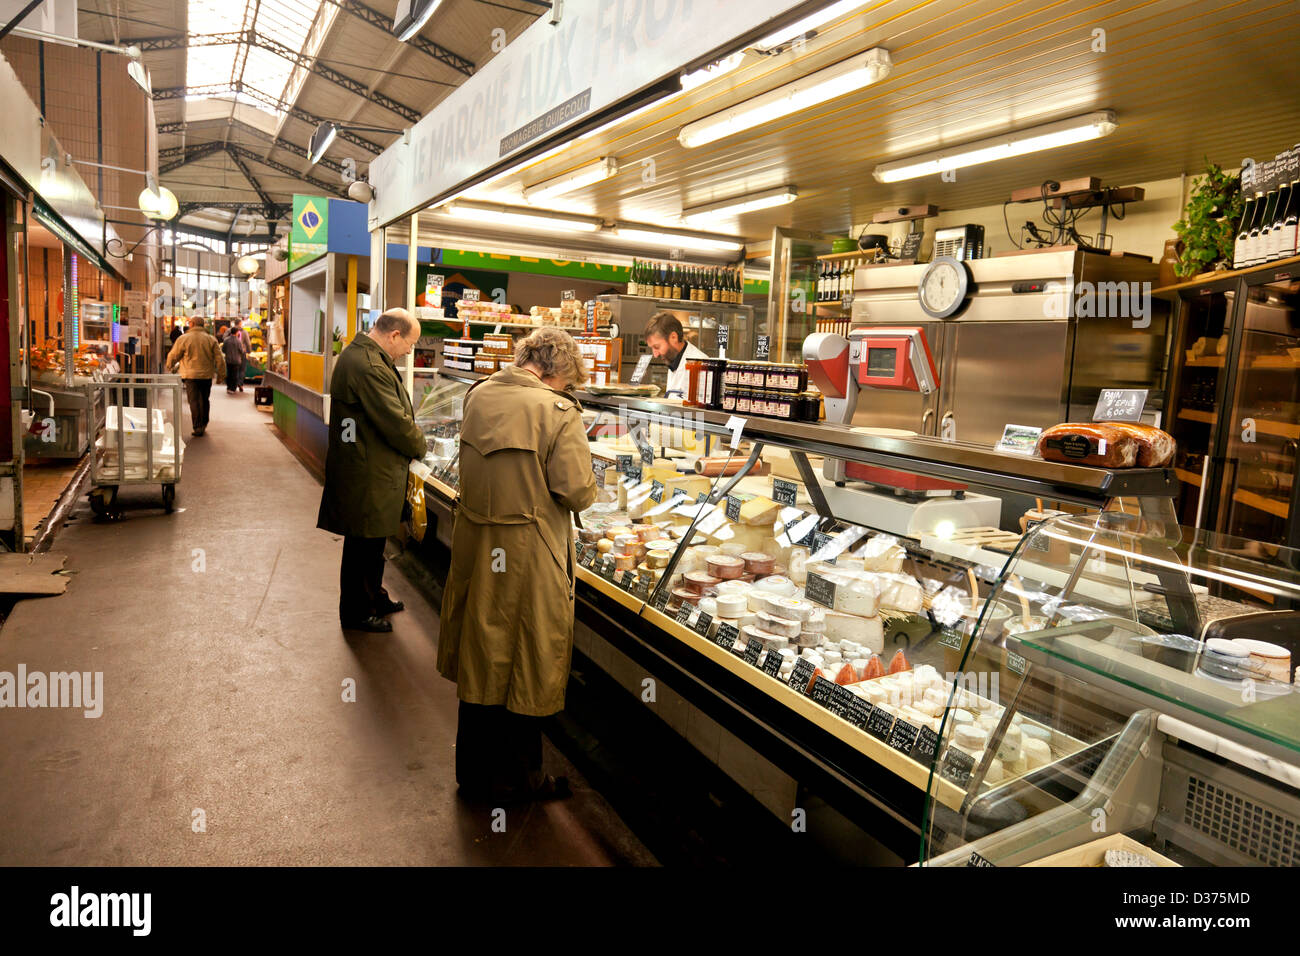 Customers and a stallholder at Le Marché aux Fromages, a cheese stall in the Marché Saint Quentin in central - Stock Image